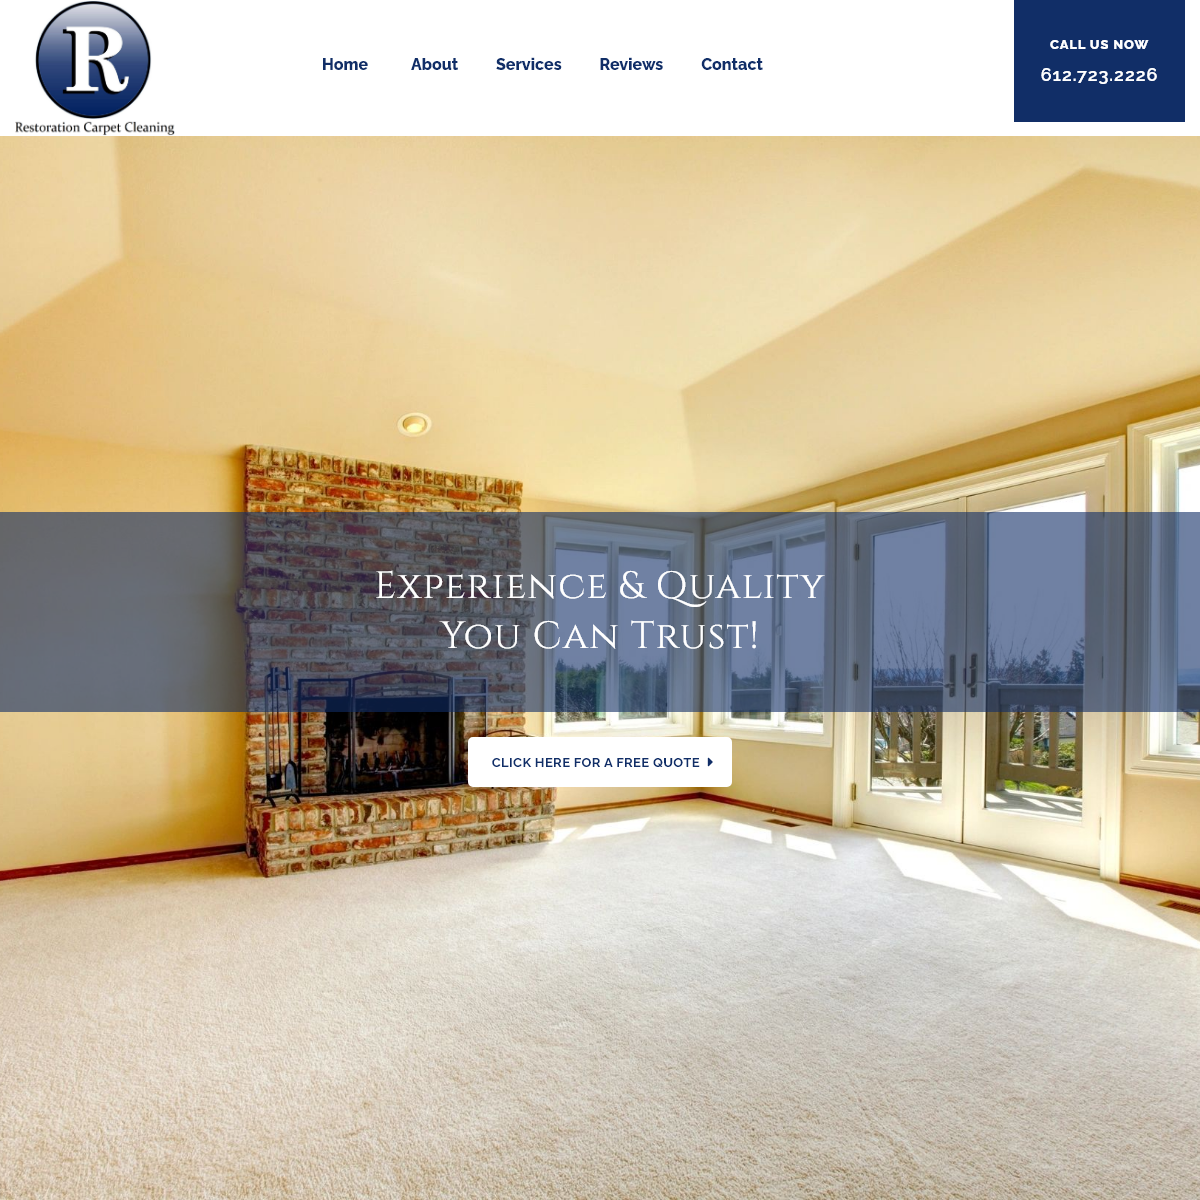 Restoration Carpet Cleaning – Residential Carpet Cleaning Services